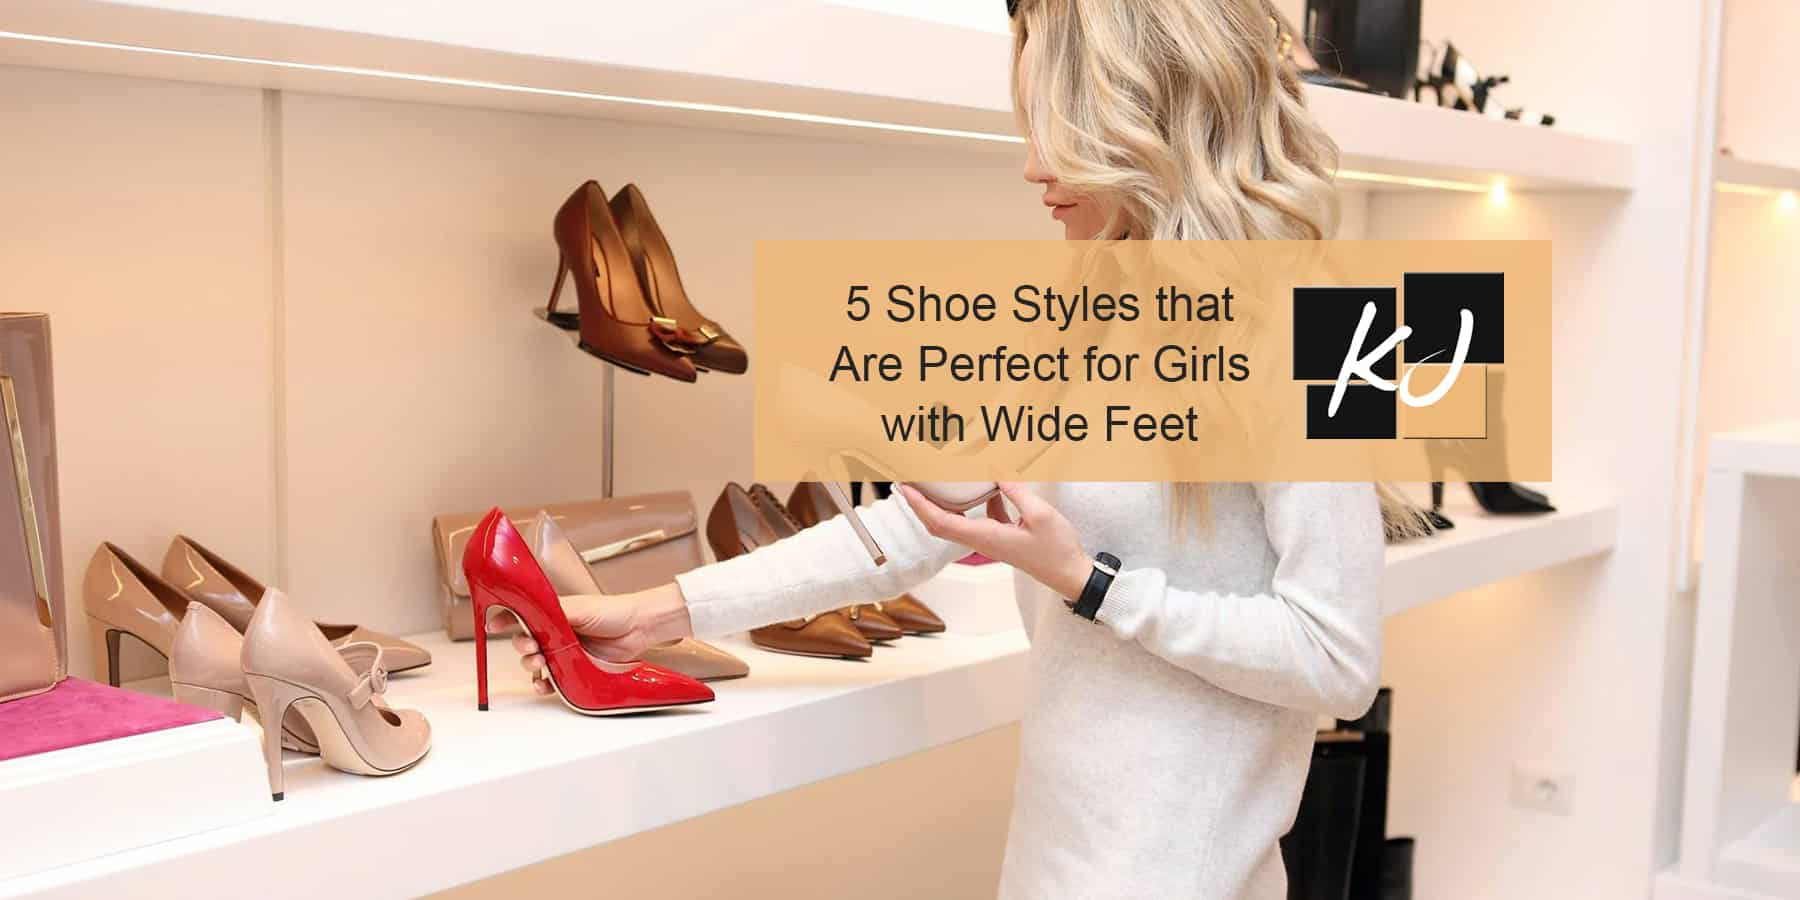 5 Shoe Styles that Are Perfect for Girls with Wide Feet